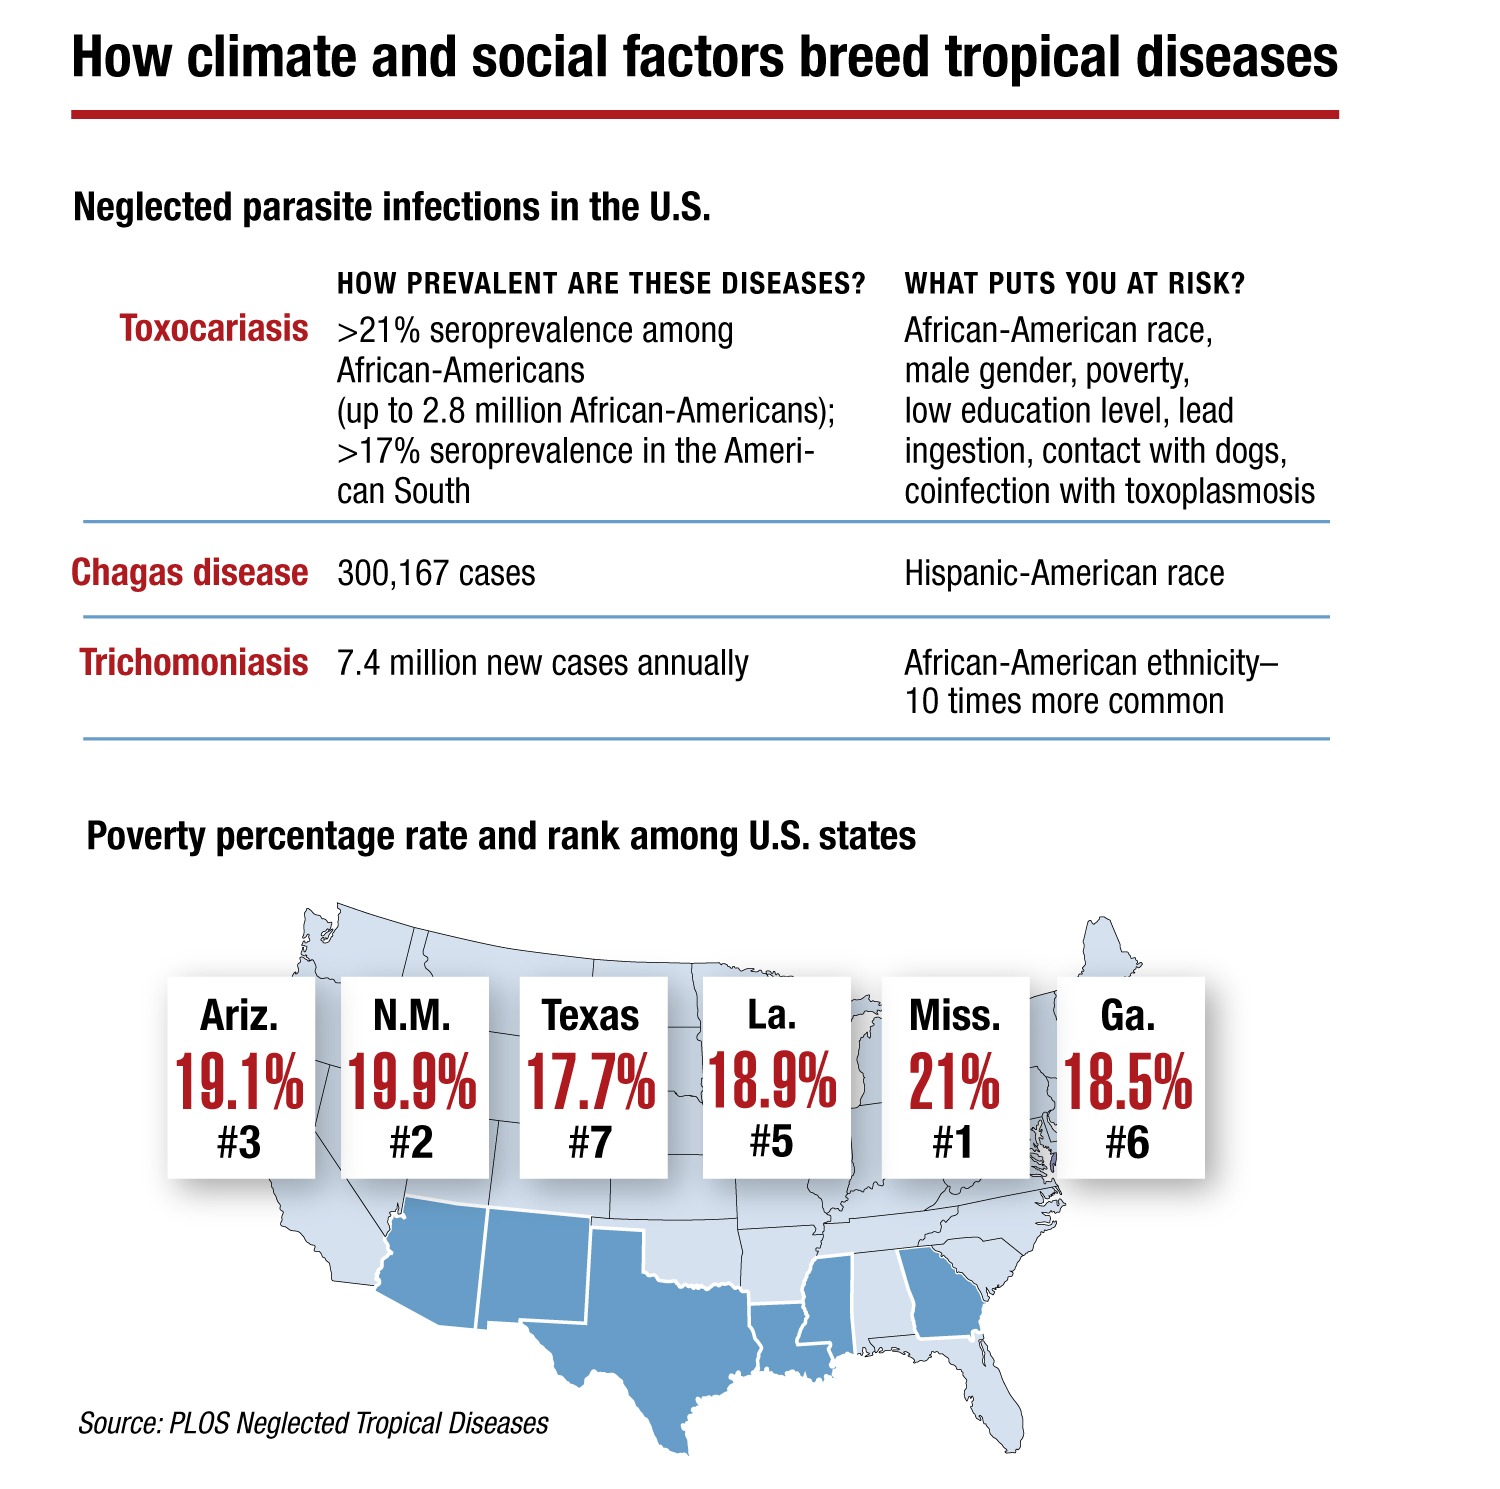 How climate and social factors breed tropical diseases